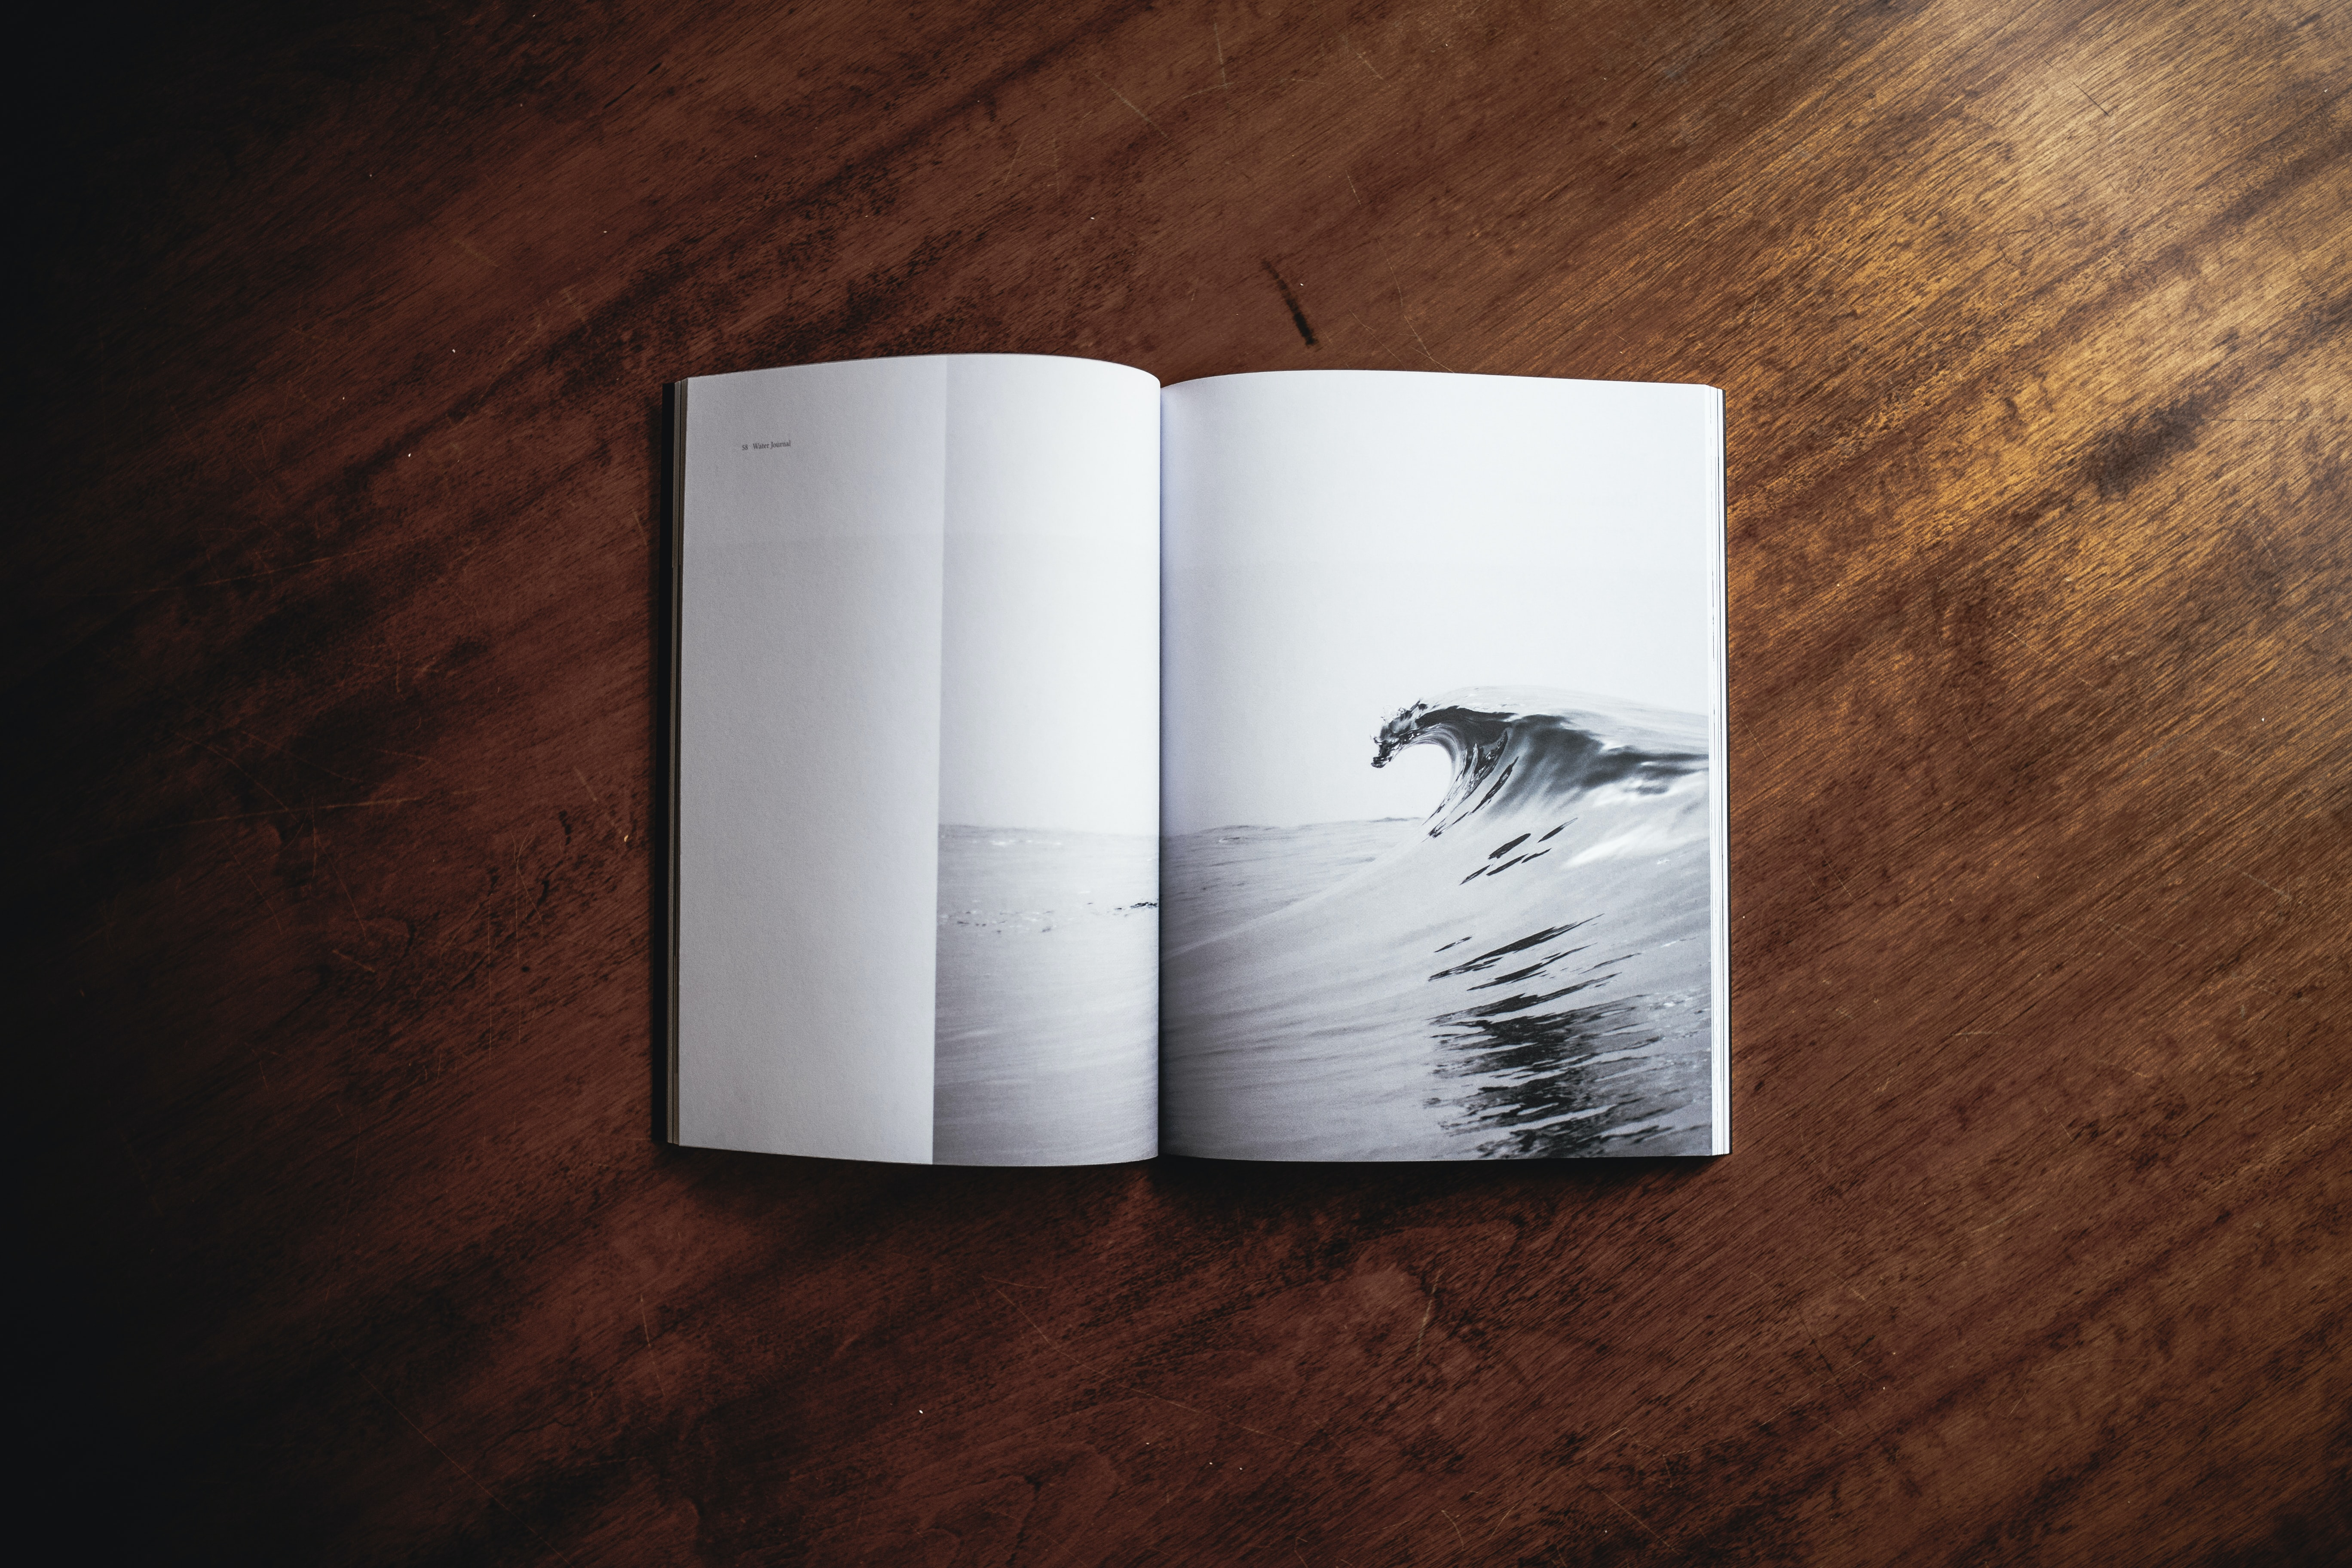 An open book with a photograph of a sea wave on its pages